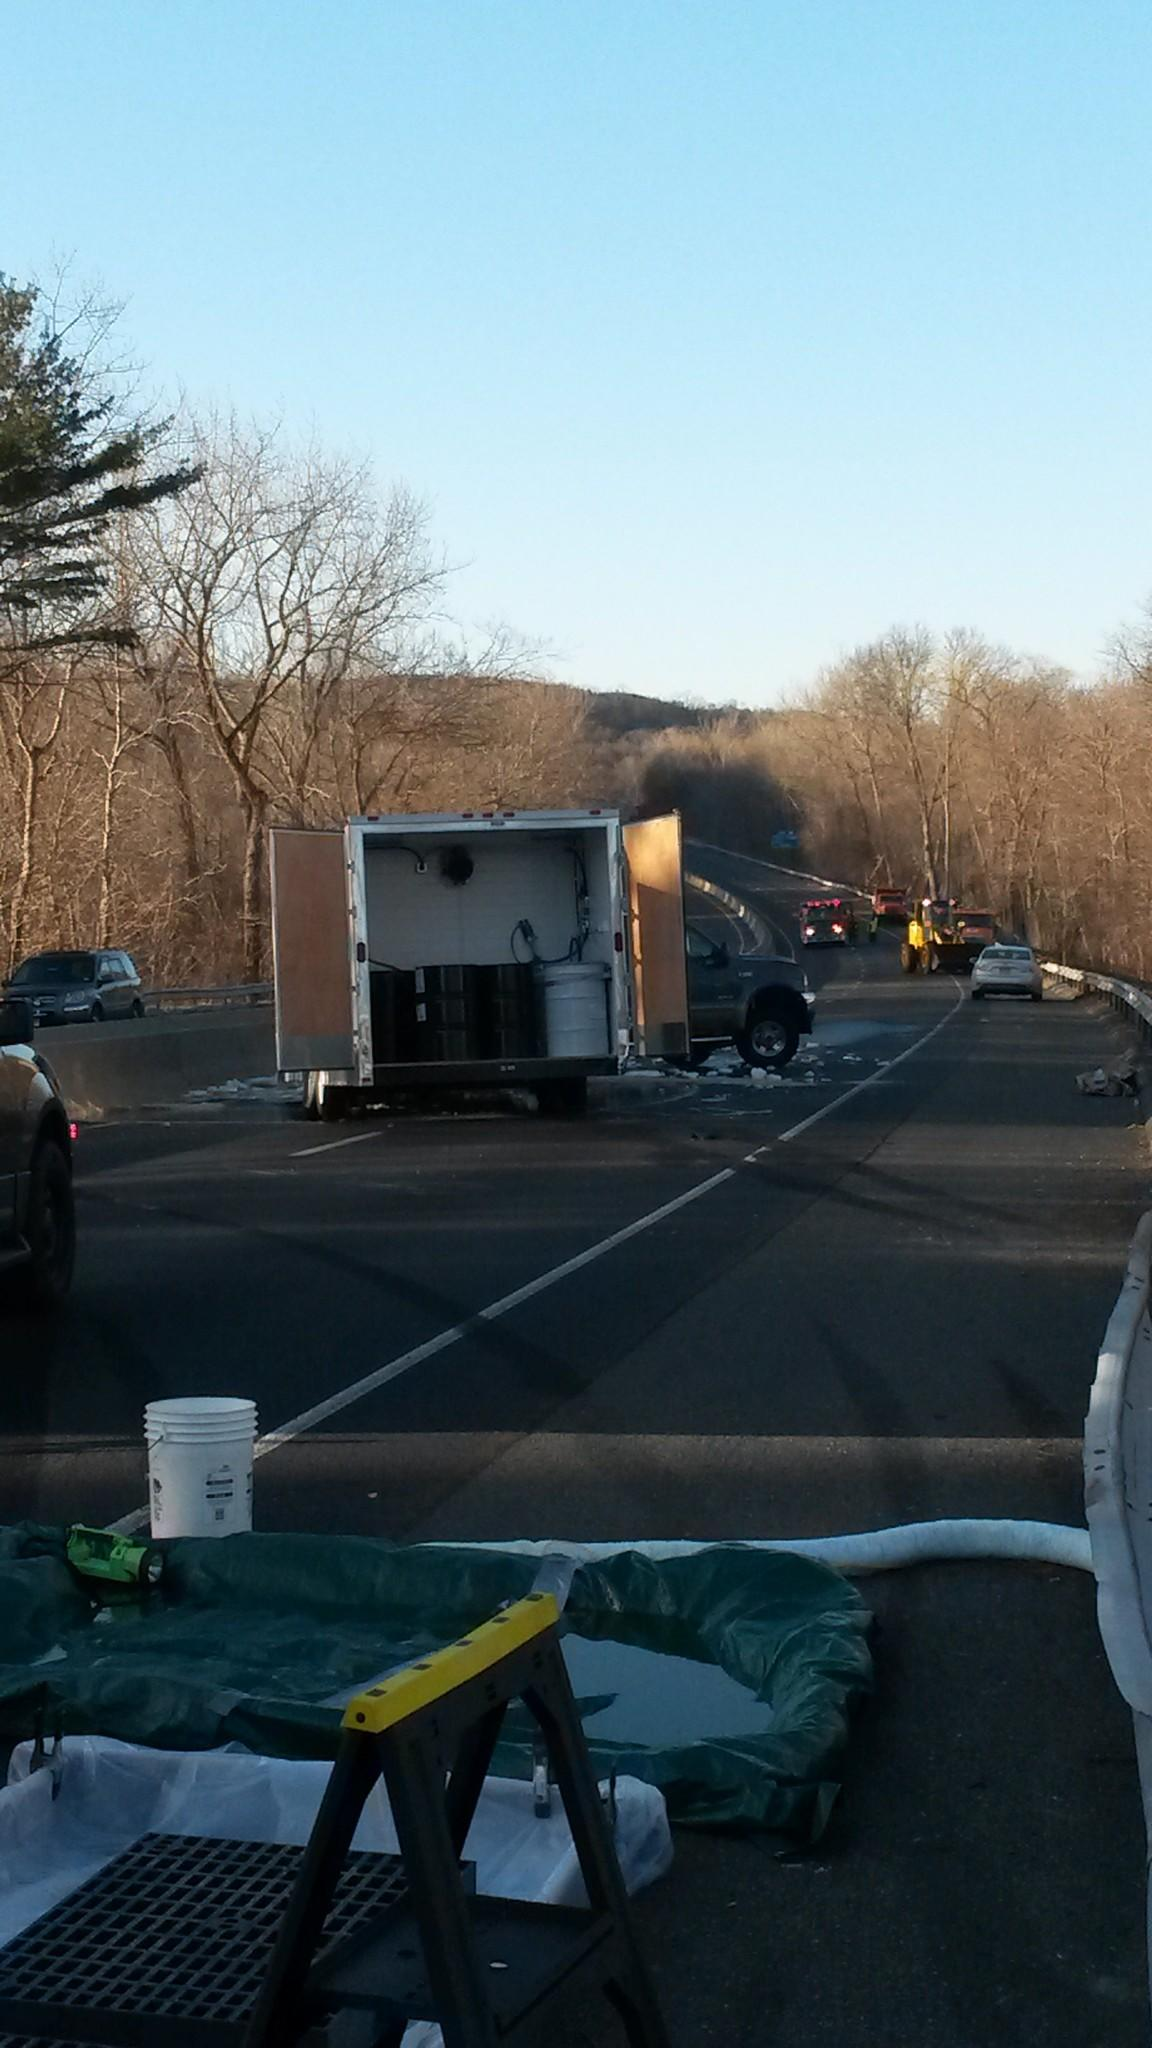 The northbound lanes of Route 8 were closed Thursday afternoon as the Department of Energy and Environmental Protection worked to clean up a chemical spill caused by a crash.